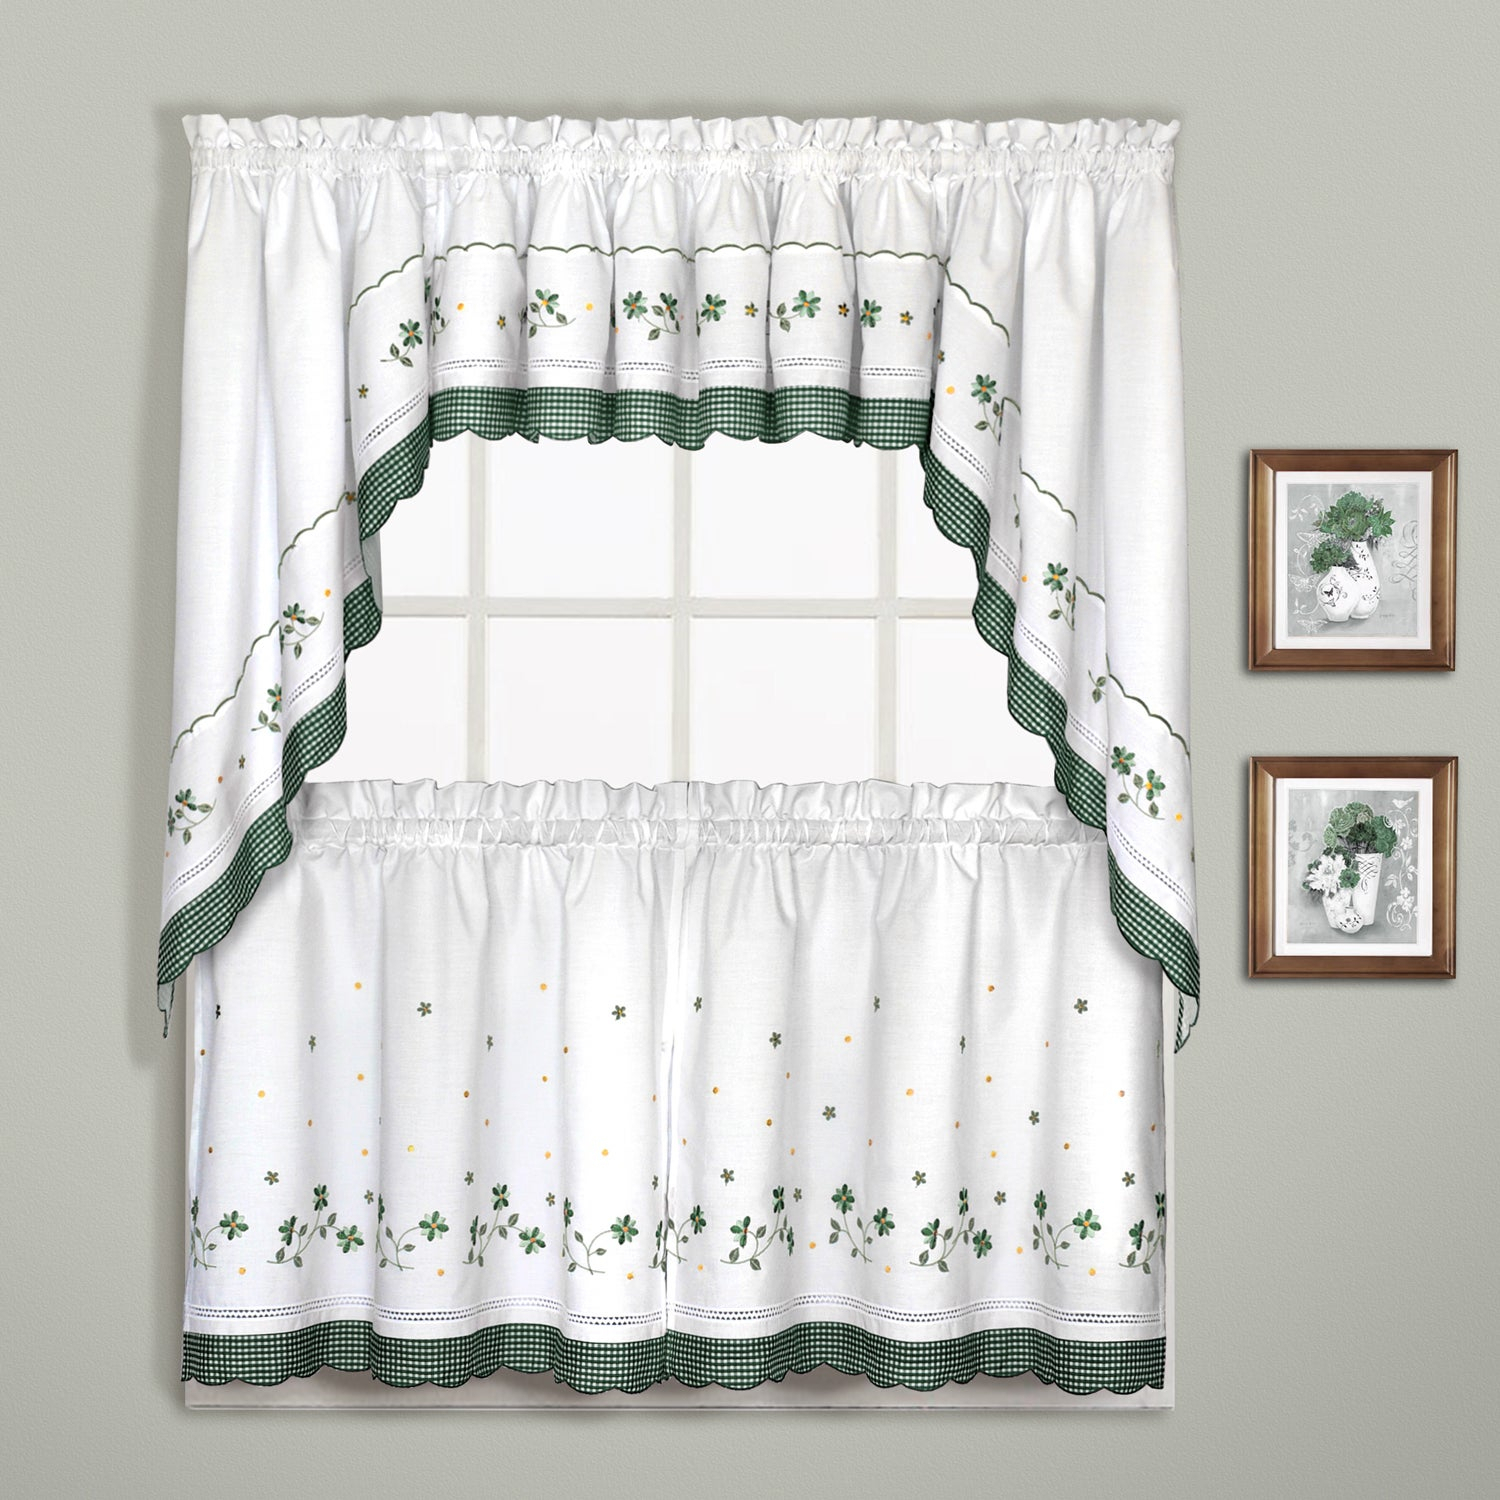 Luxury Collection Gingham Light Filtering Straight Valance Pertaining To Cotton Blend Ivy Floral Tier Curtain And Swag Sets (View 18 of 20)